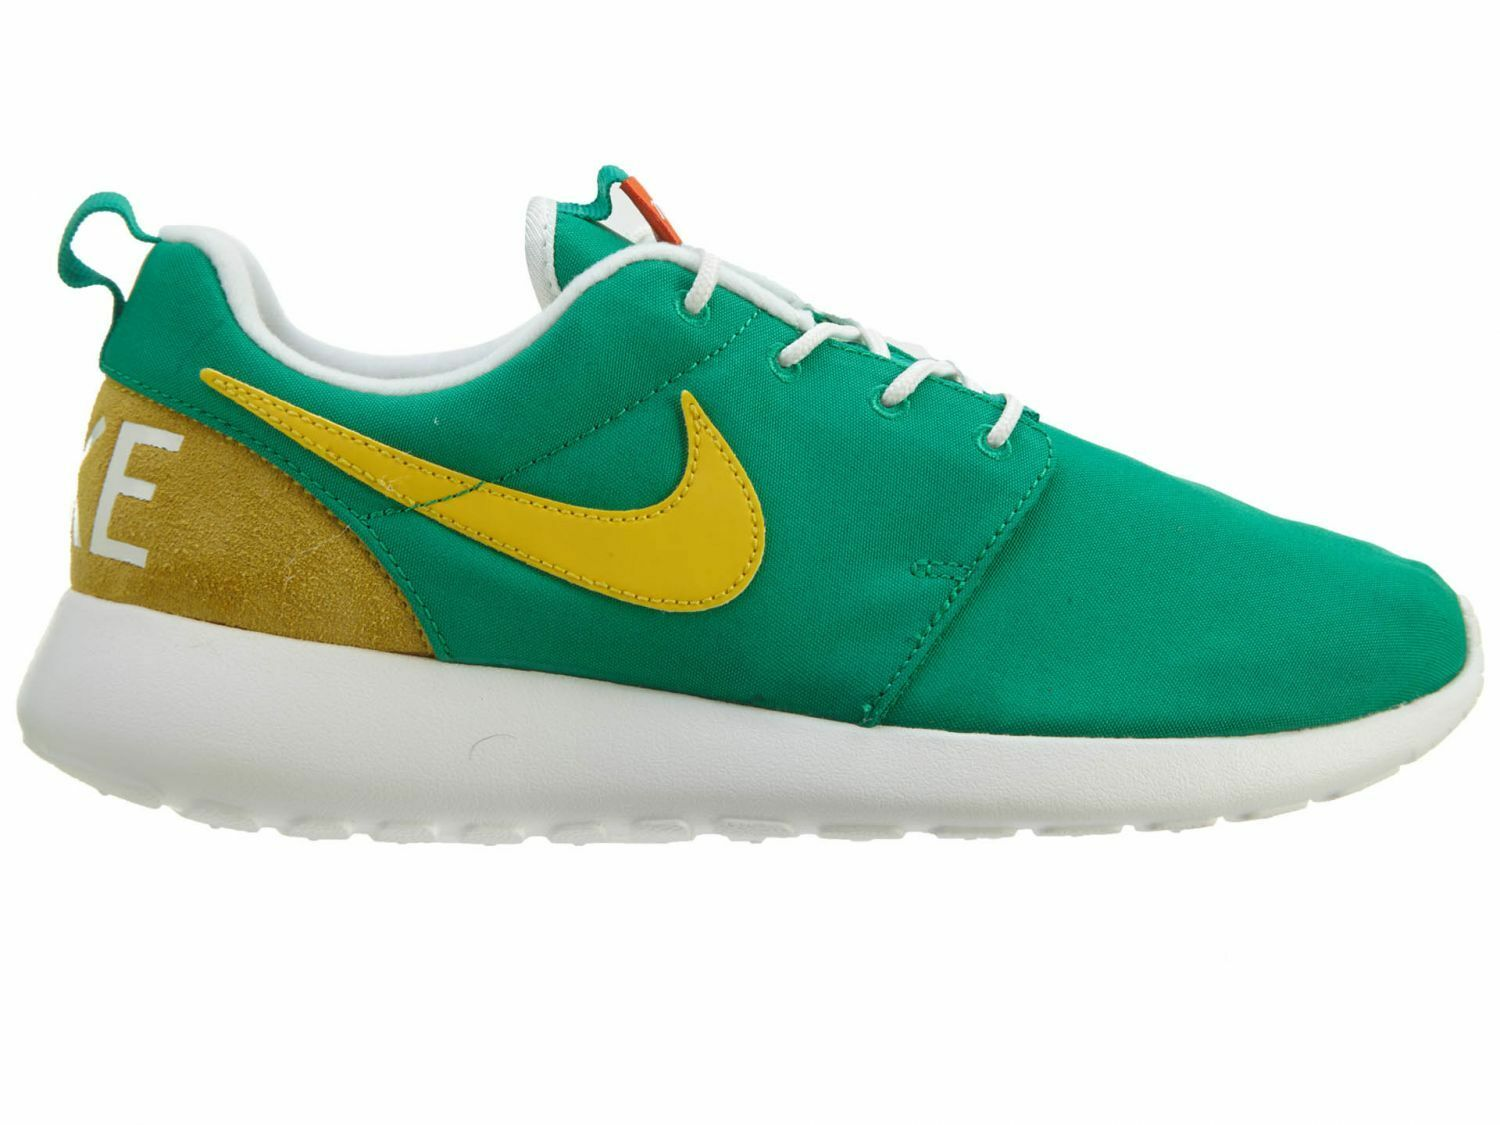 Nike Roshe Lucid One Retro Mens 819881-371 Lucid Roshe Green Sulfur Running Shoes Size 8 505738